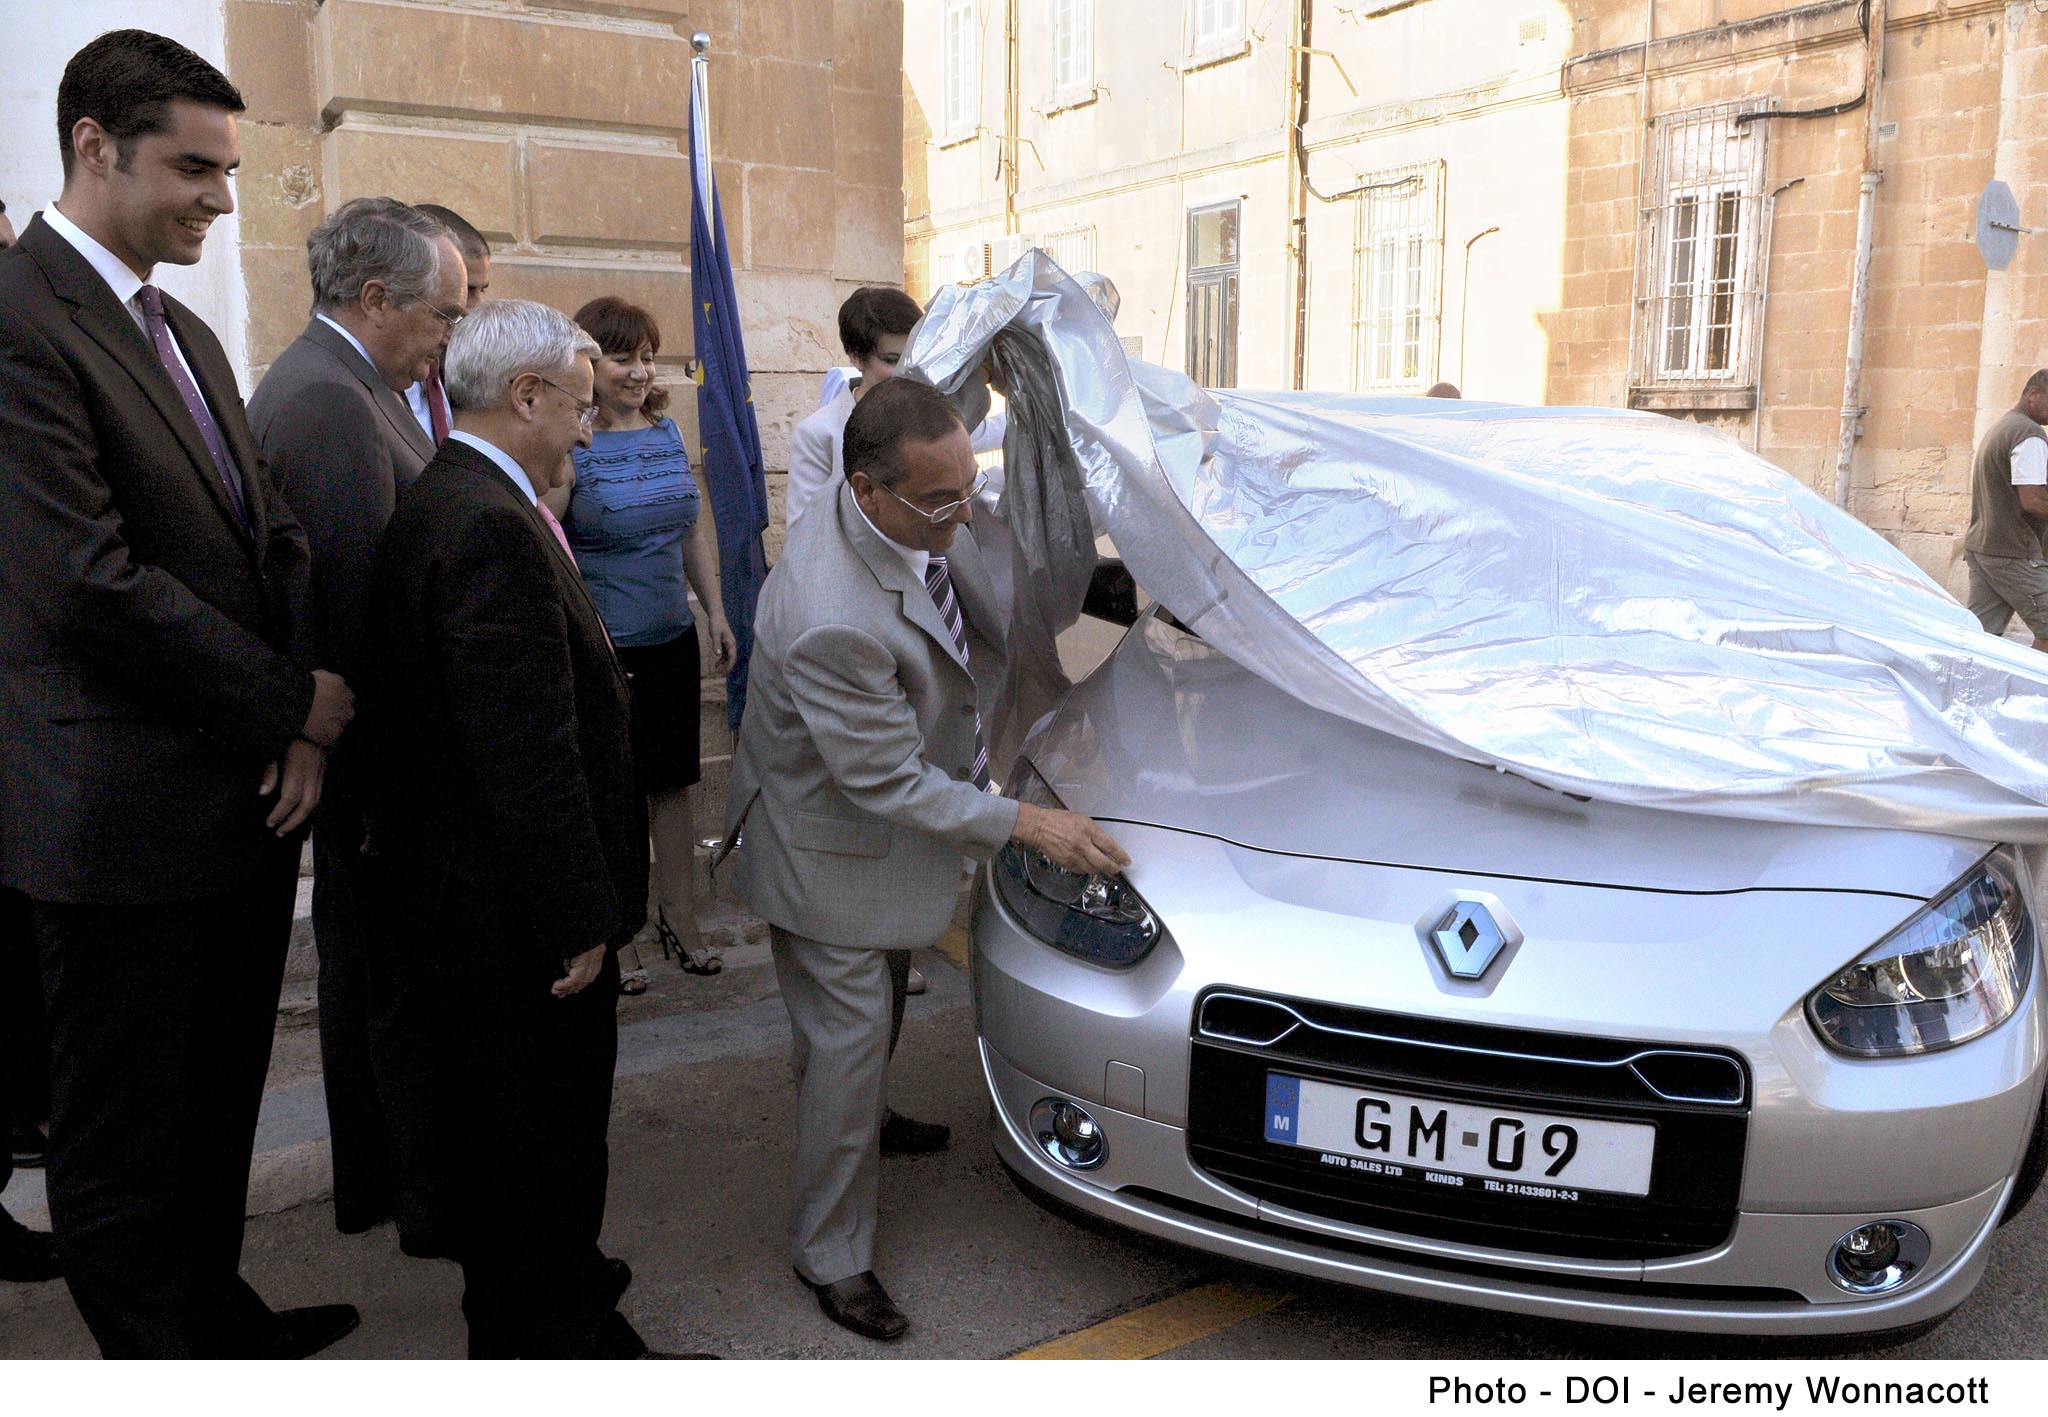 Launch Of The First Electric Vehicles Demo In Malta By Minister